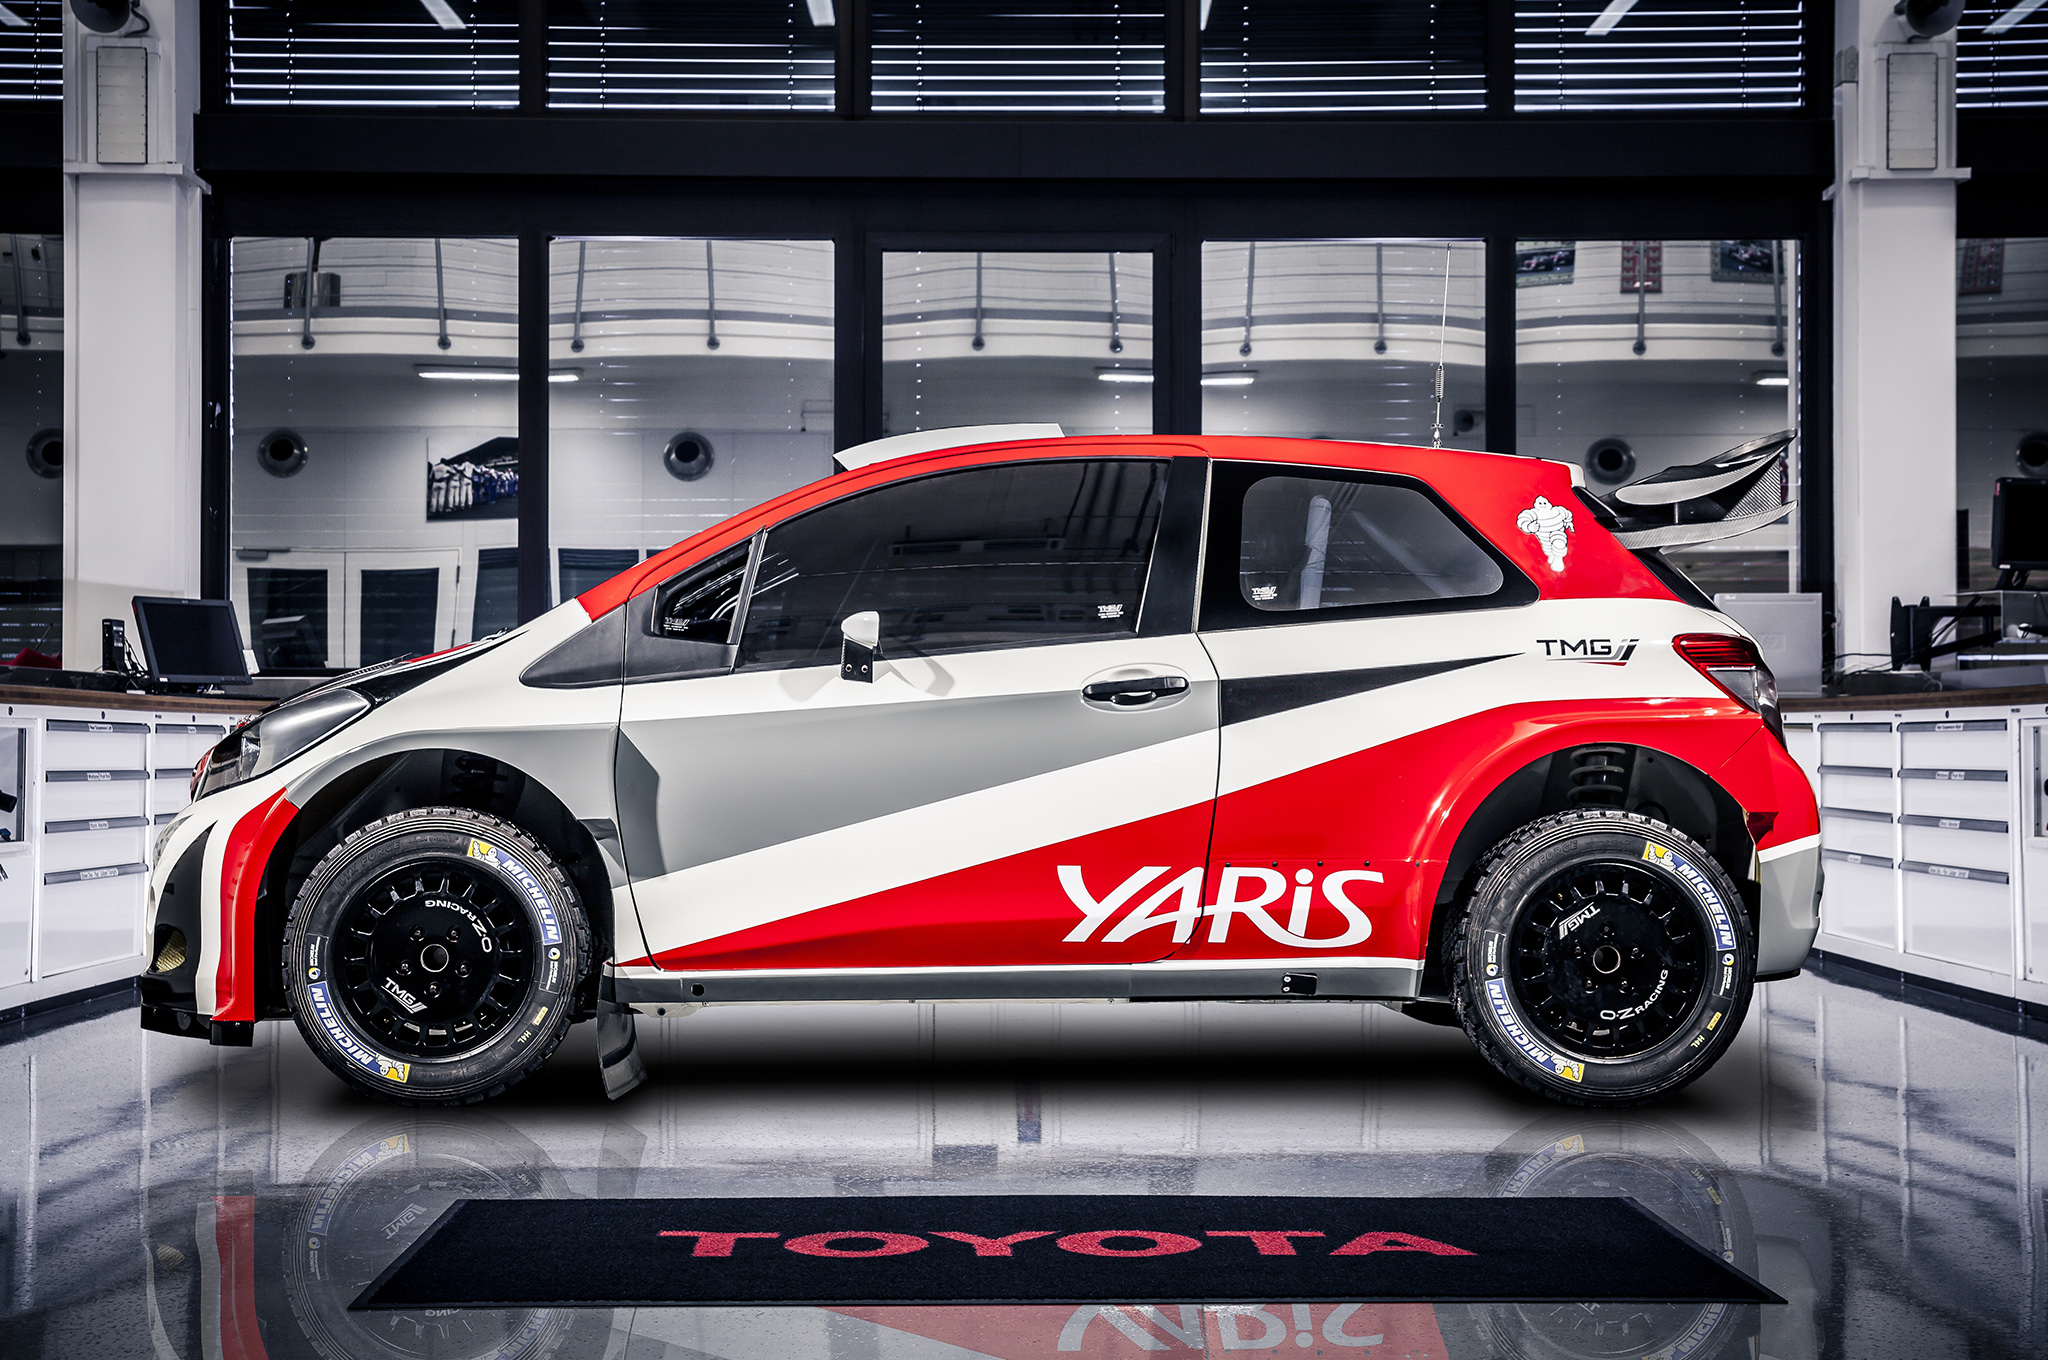 Toyota Returns To Rallying With The Yaris Wrc After 18 Year Hiatus